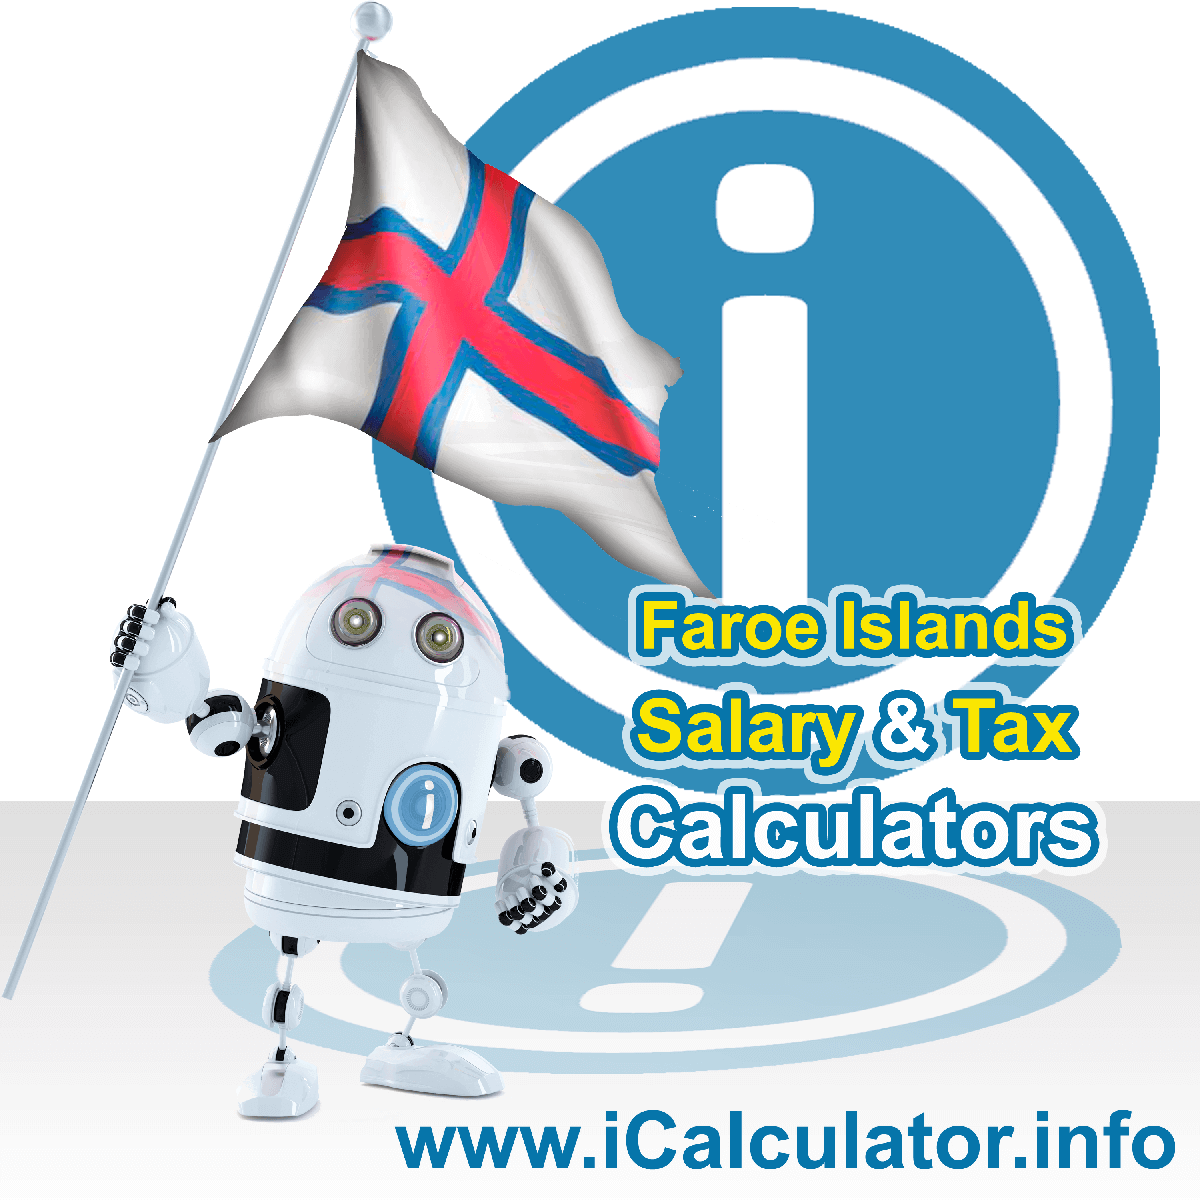 Faroe Islands Wage Calculator. This image shows the Faroe Islands flag and information relating to the tax formula for the Faroe Islands Tax Calculator